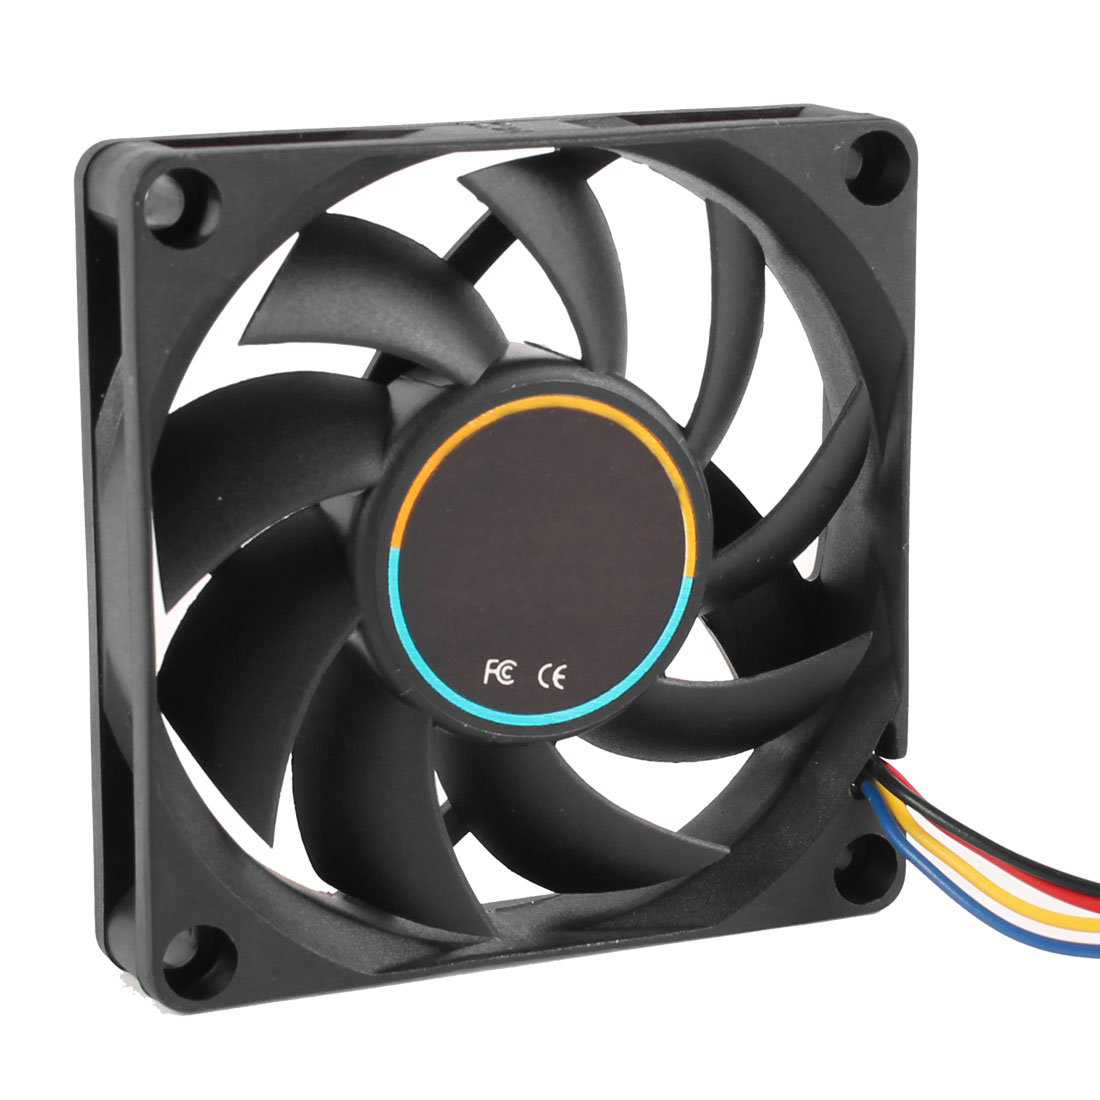 PROMOTION! Hot 70mmx15mm 12V 4 Pins PWM PC Computer Case CPU Cooler Cooling Fan Black aerocool 15 blade 1 56w mute model computer cpu cooling fan black 12 x 12cm 7v